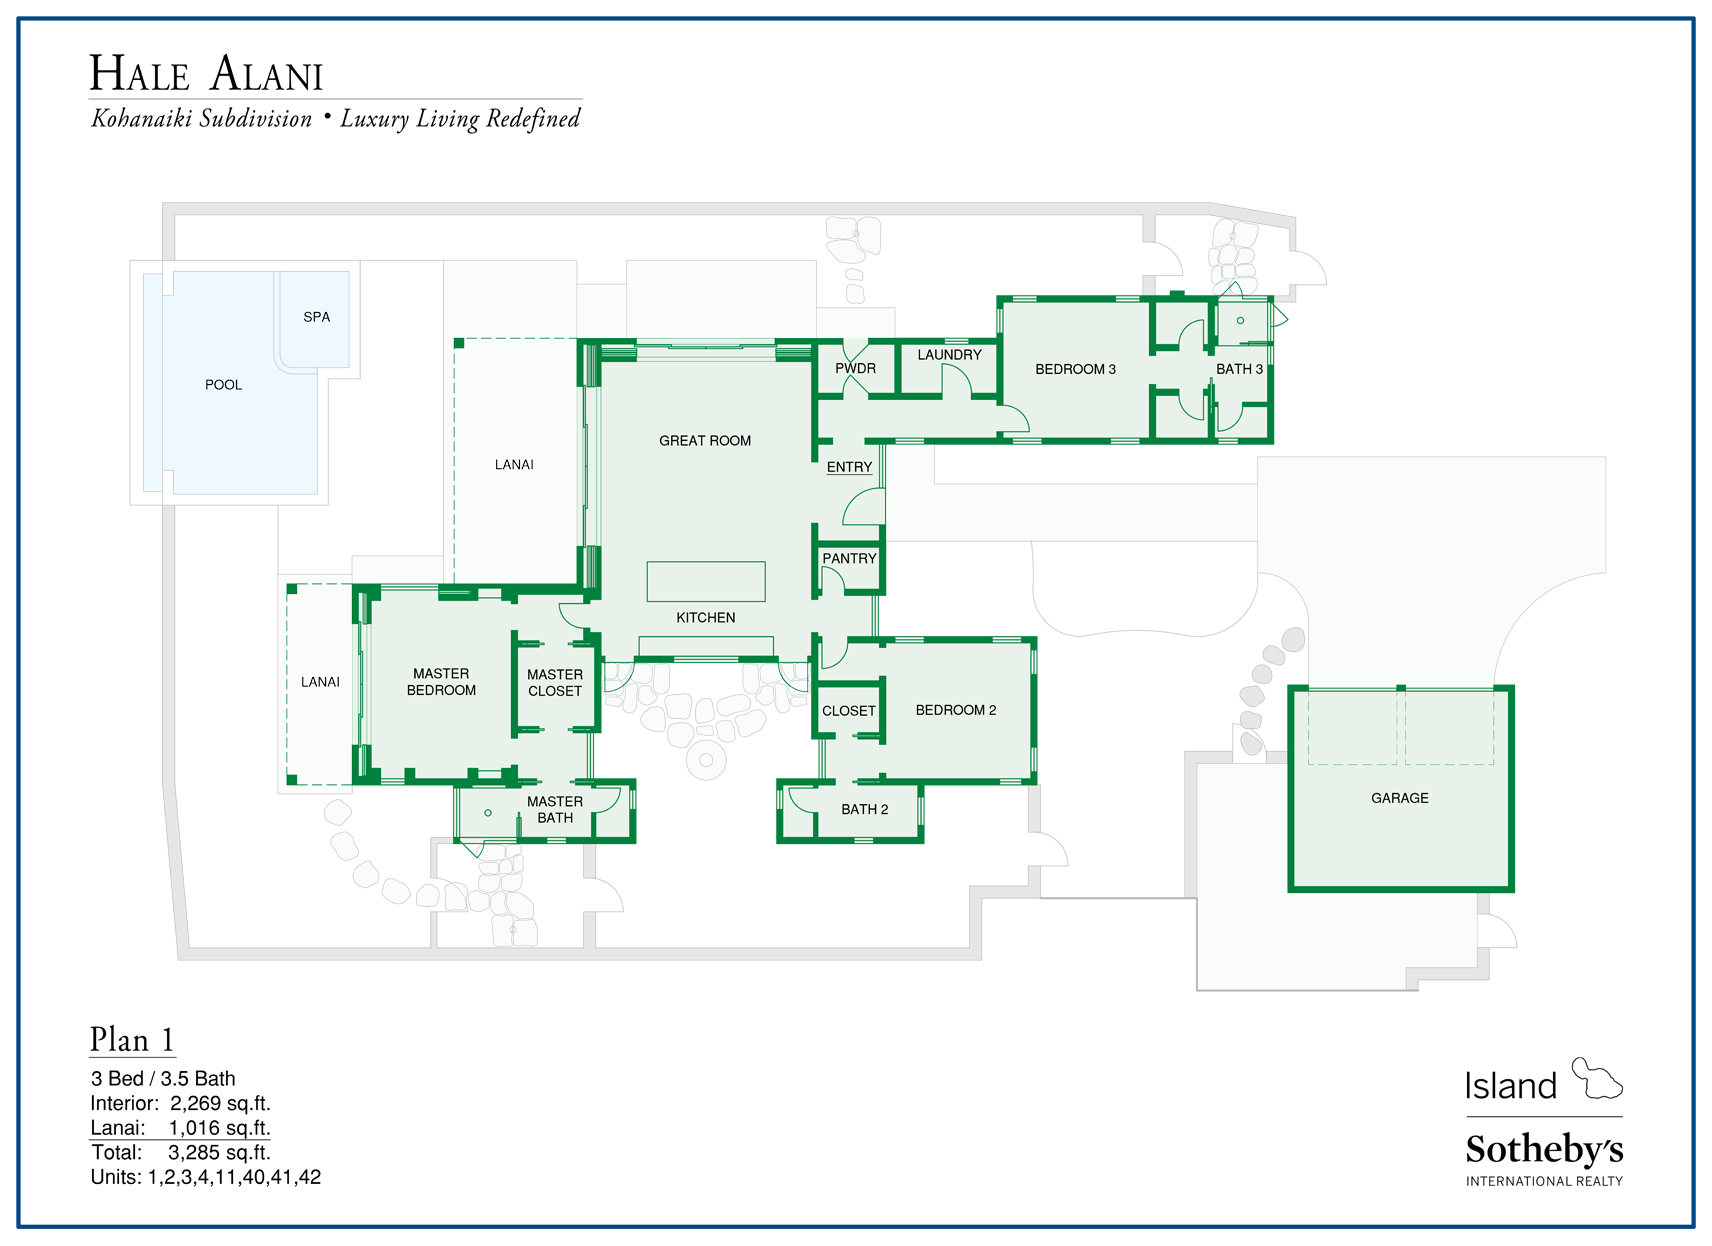 hale alani floor plan big island